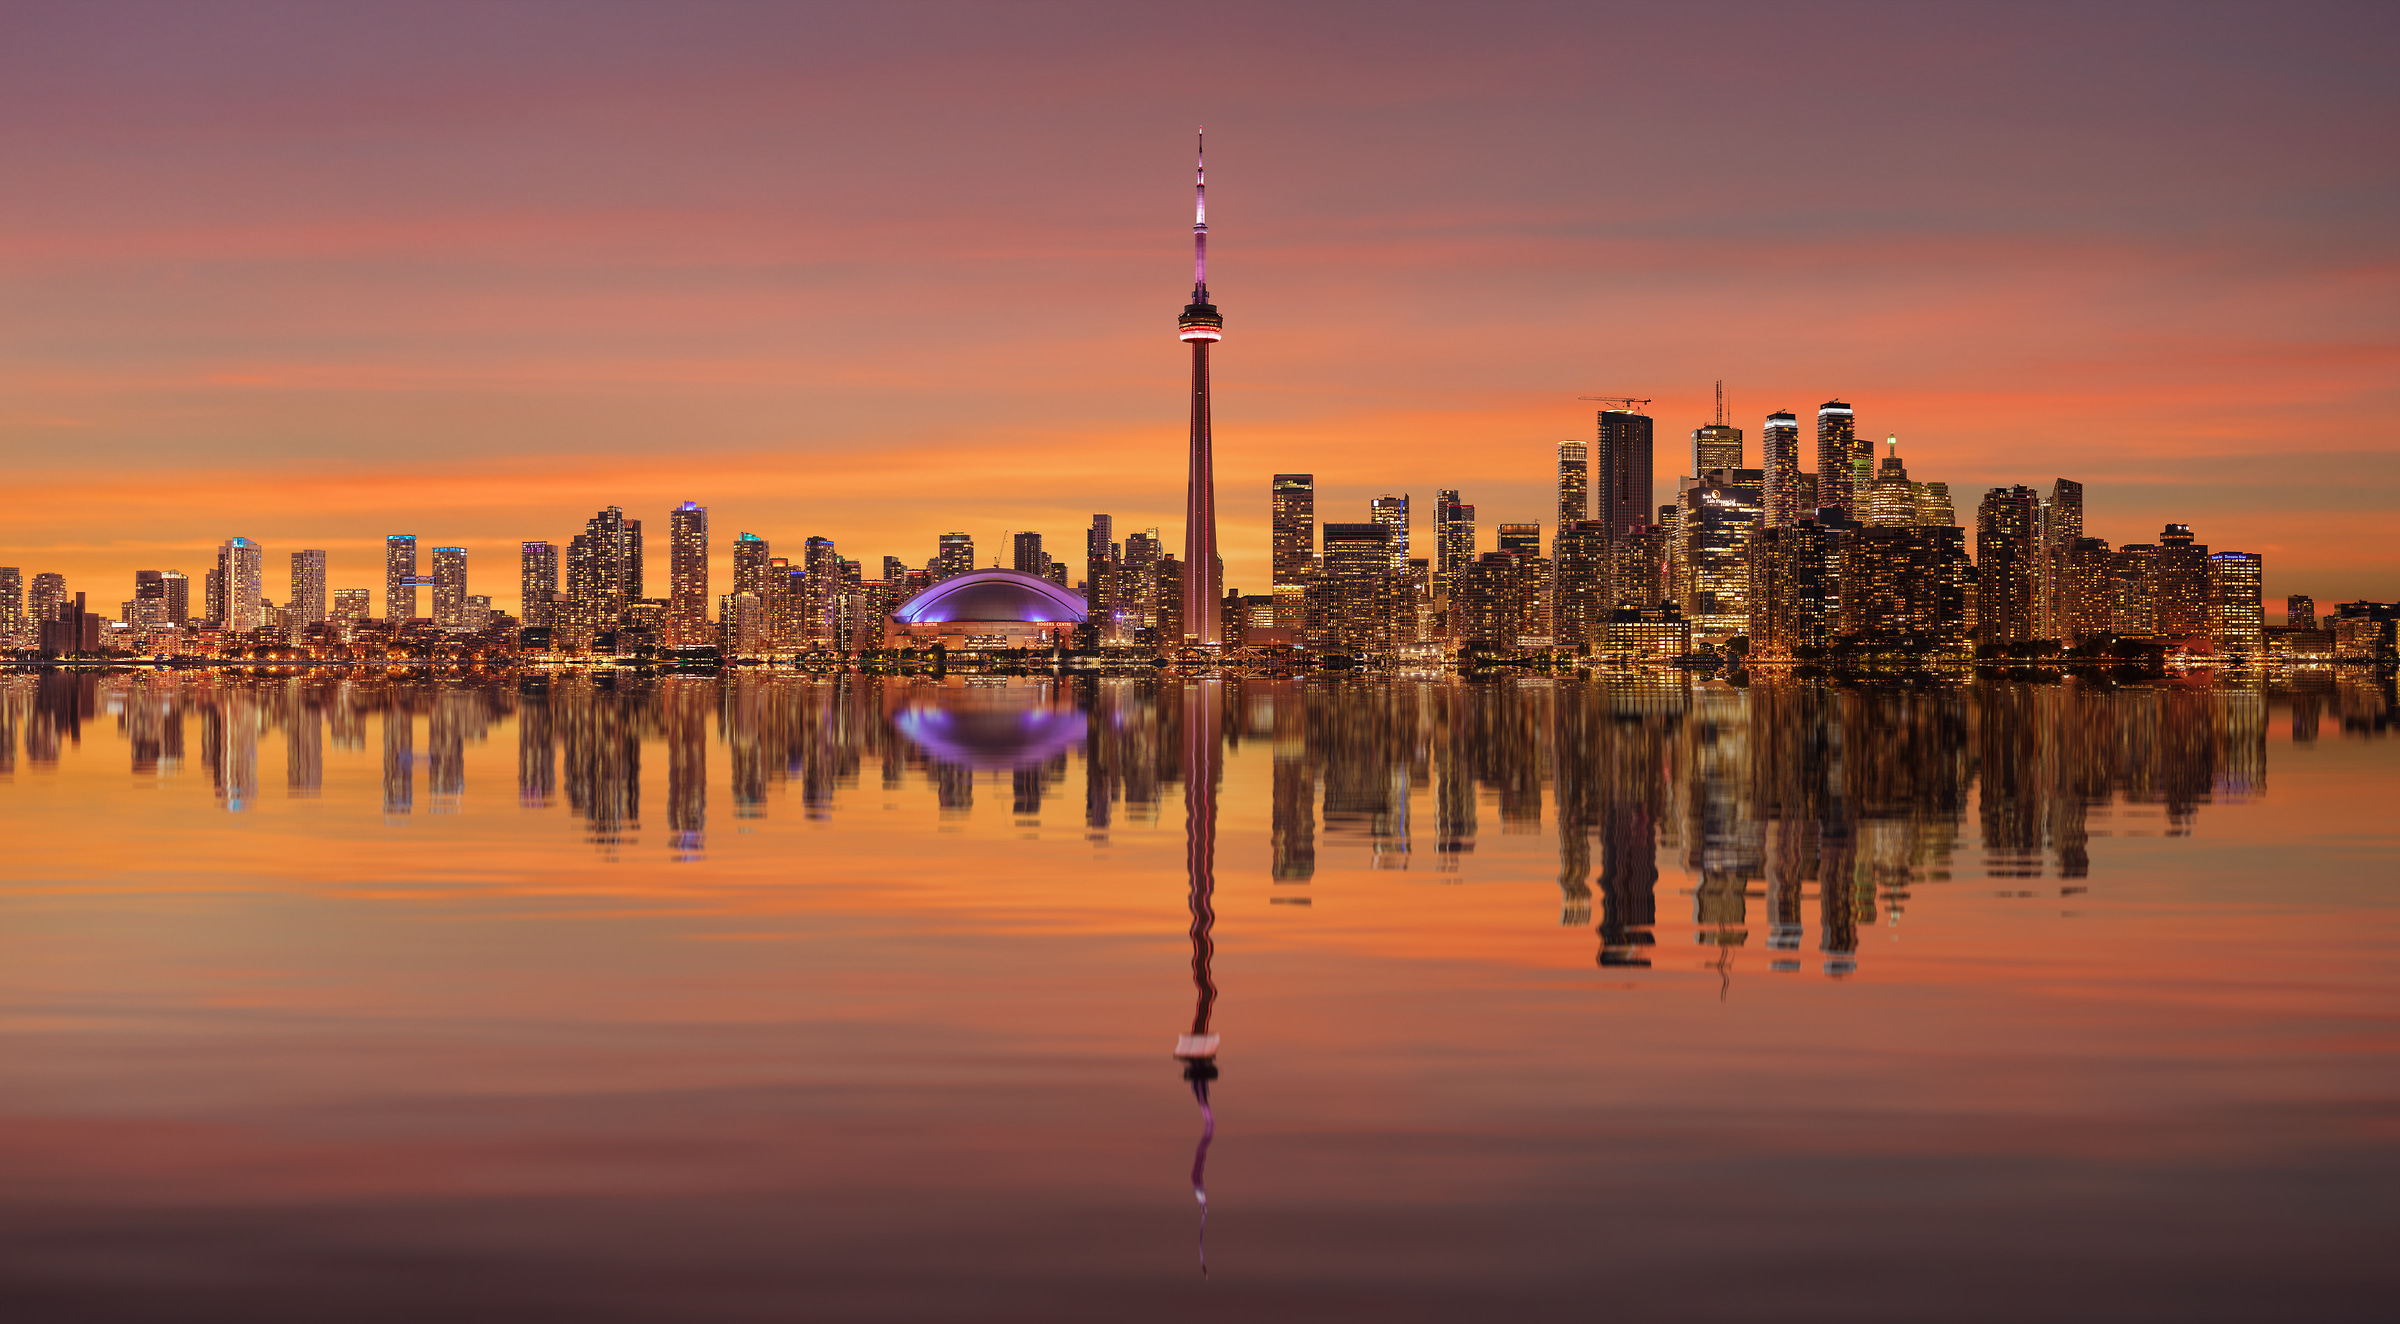 3204 megapixels! A very high resolution, large-format VAST photo print of the Toronto skyline at sunset with a reflection in Lake Ontario; cityscape photograph created by Chris Collacott in Toronto, Ontario, Canada.